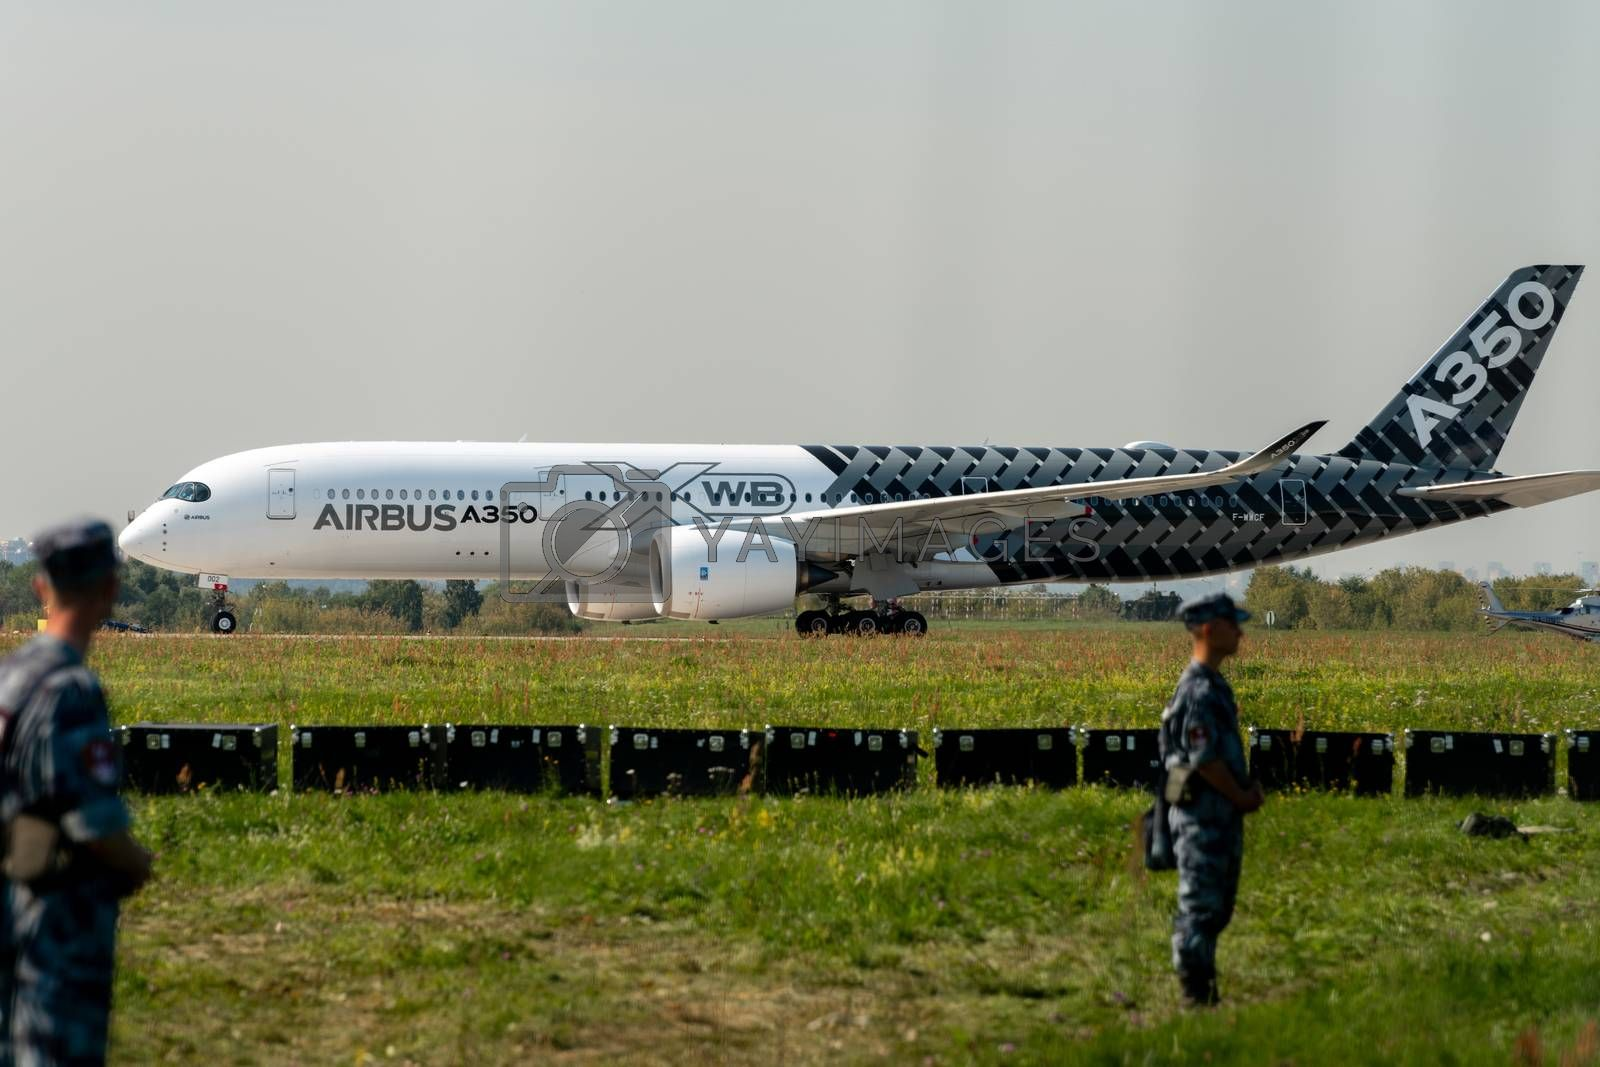 August 30, 2019. Zhukovsky, Russia. long-range wide-body twin-engine passenger aircraft Airbus A350-900 XWB Airbus Industrie at the International Aviation and Space Salon MAKS 2019.